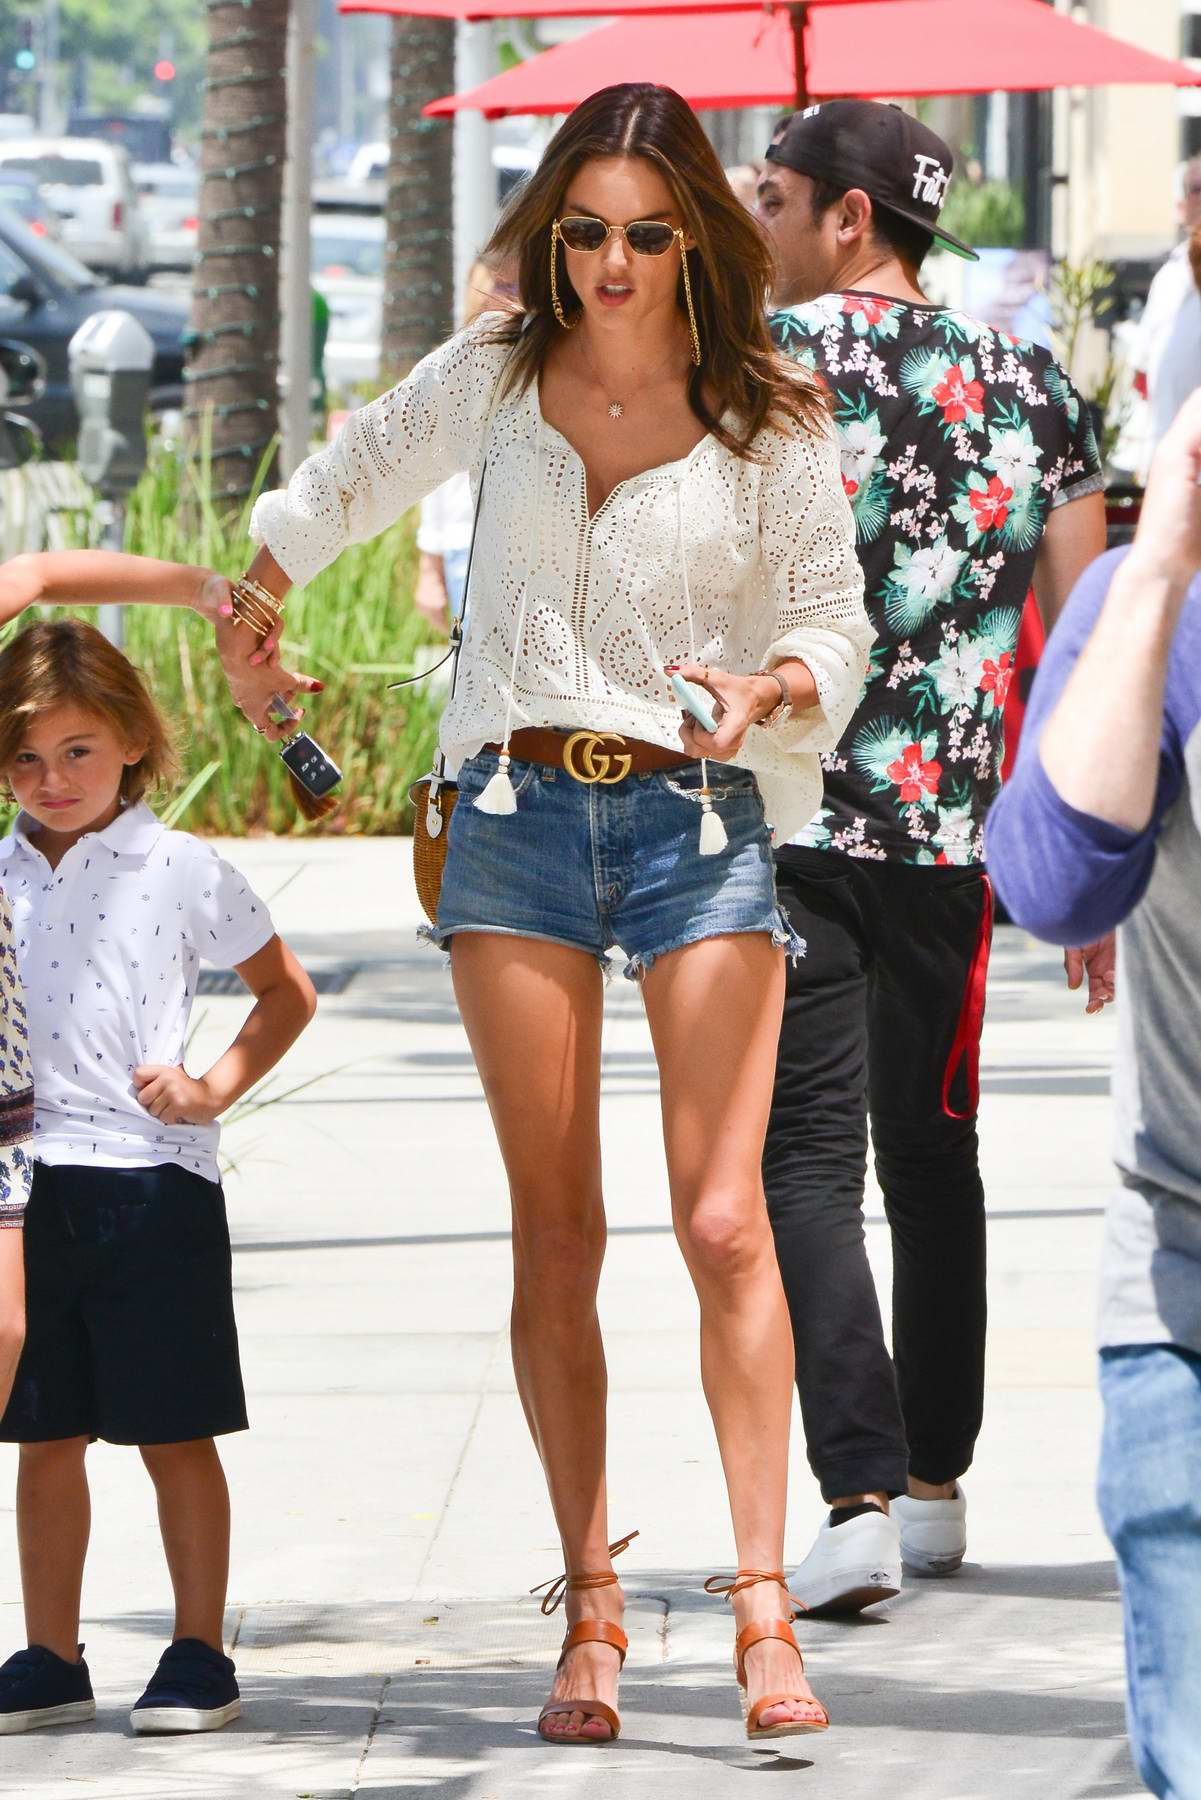 990b2fd9262 alessandra ambrosio takes her kids and mother out to celebrate her ...